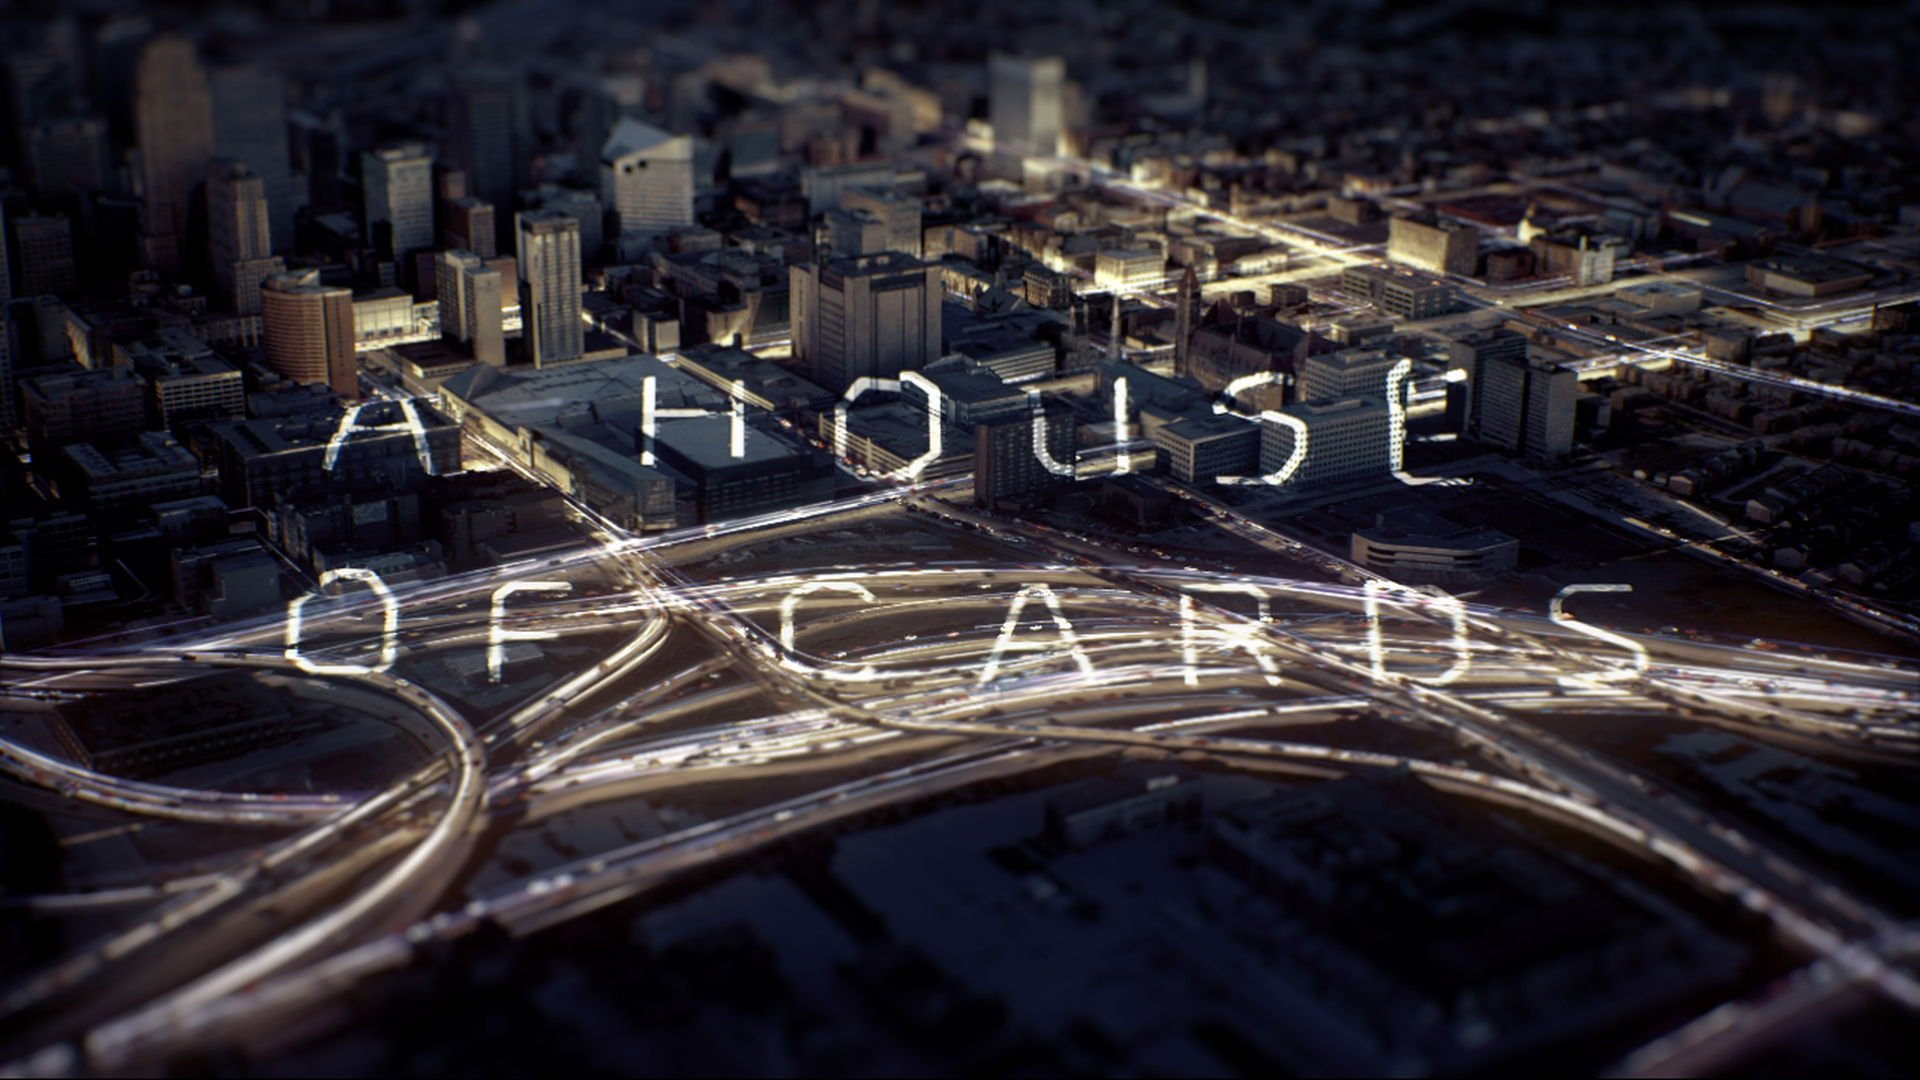 Aerial city shot with luminous particles flow and a text projected with 3D camera mapping